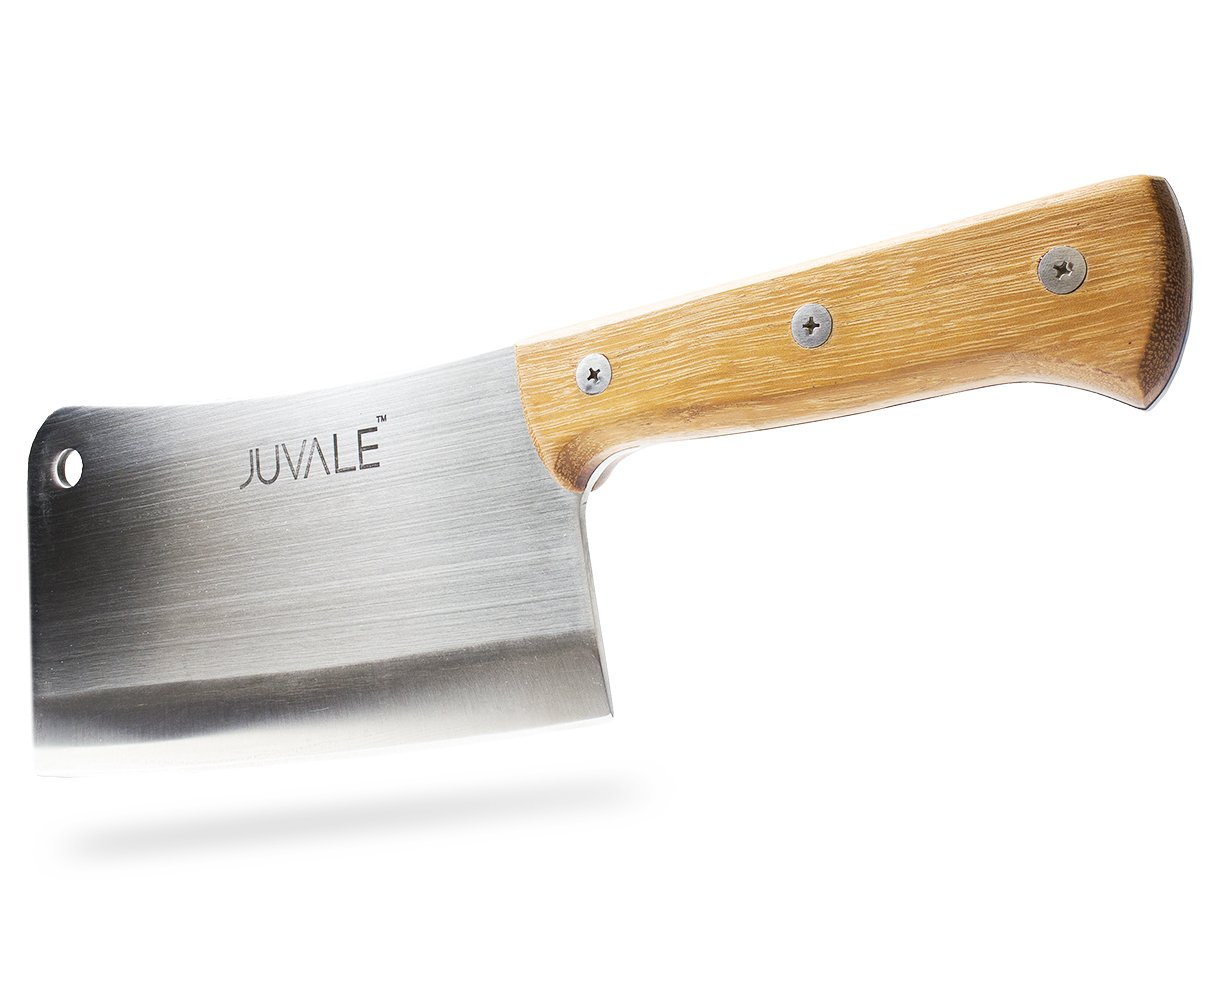 Juvale Stainless Steel Heavy Duty Meat Cleaver/Chopper/Butcher Knife - Solid Wood Handle - Professional Quality - for Home & Restaurant Use - 8 Inches